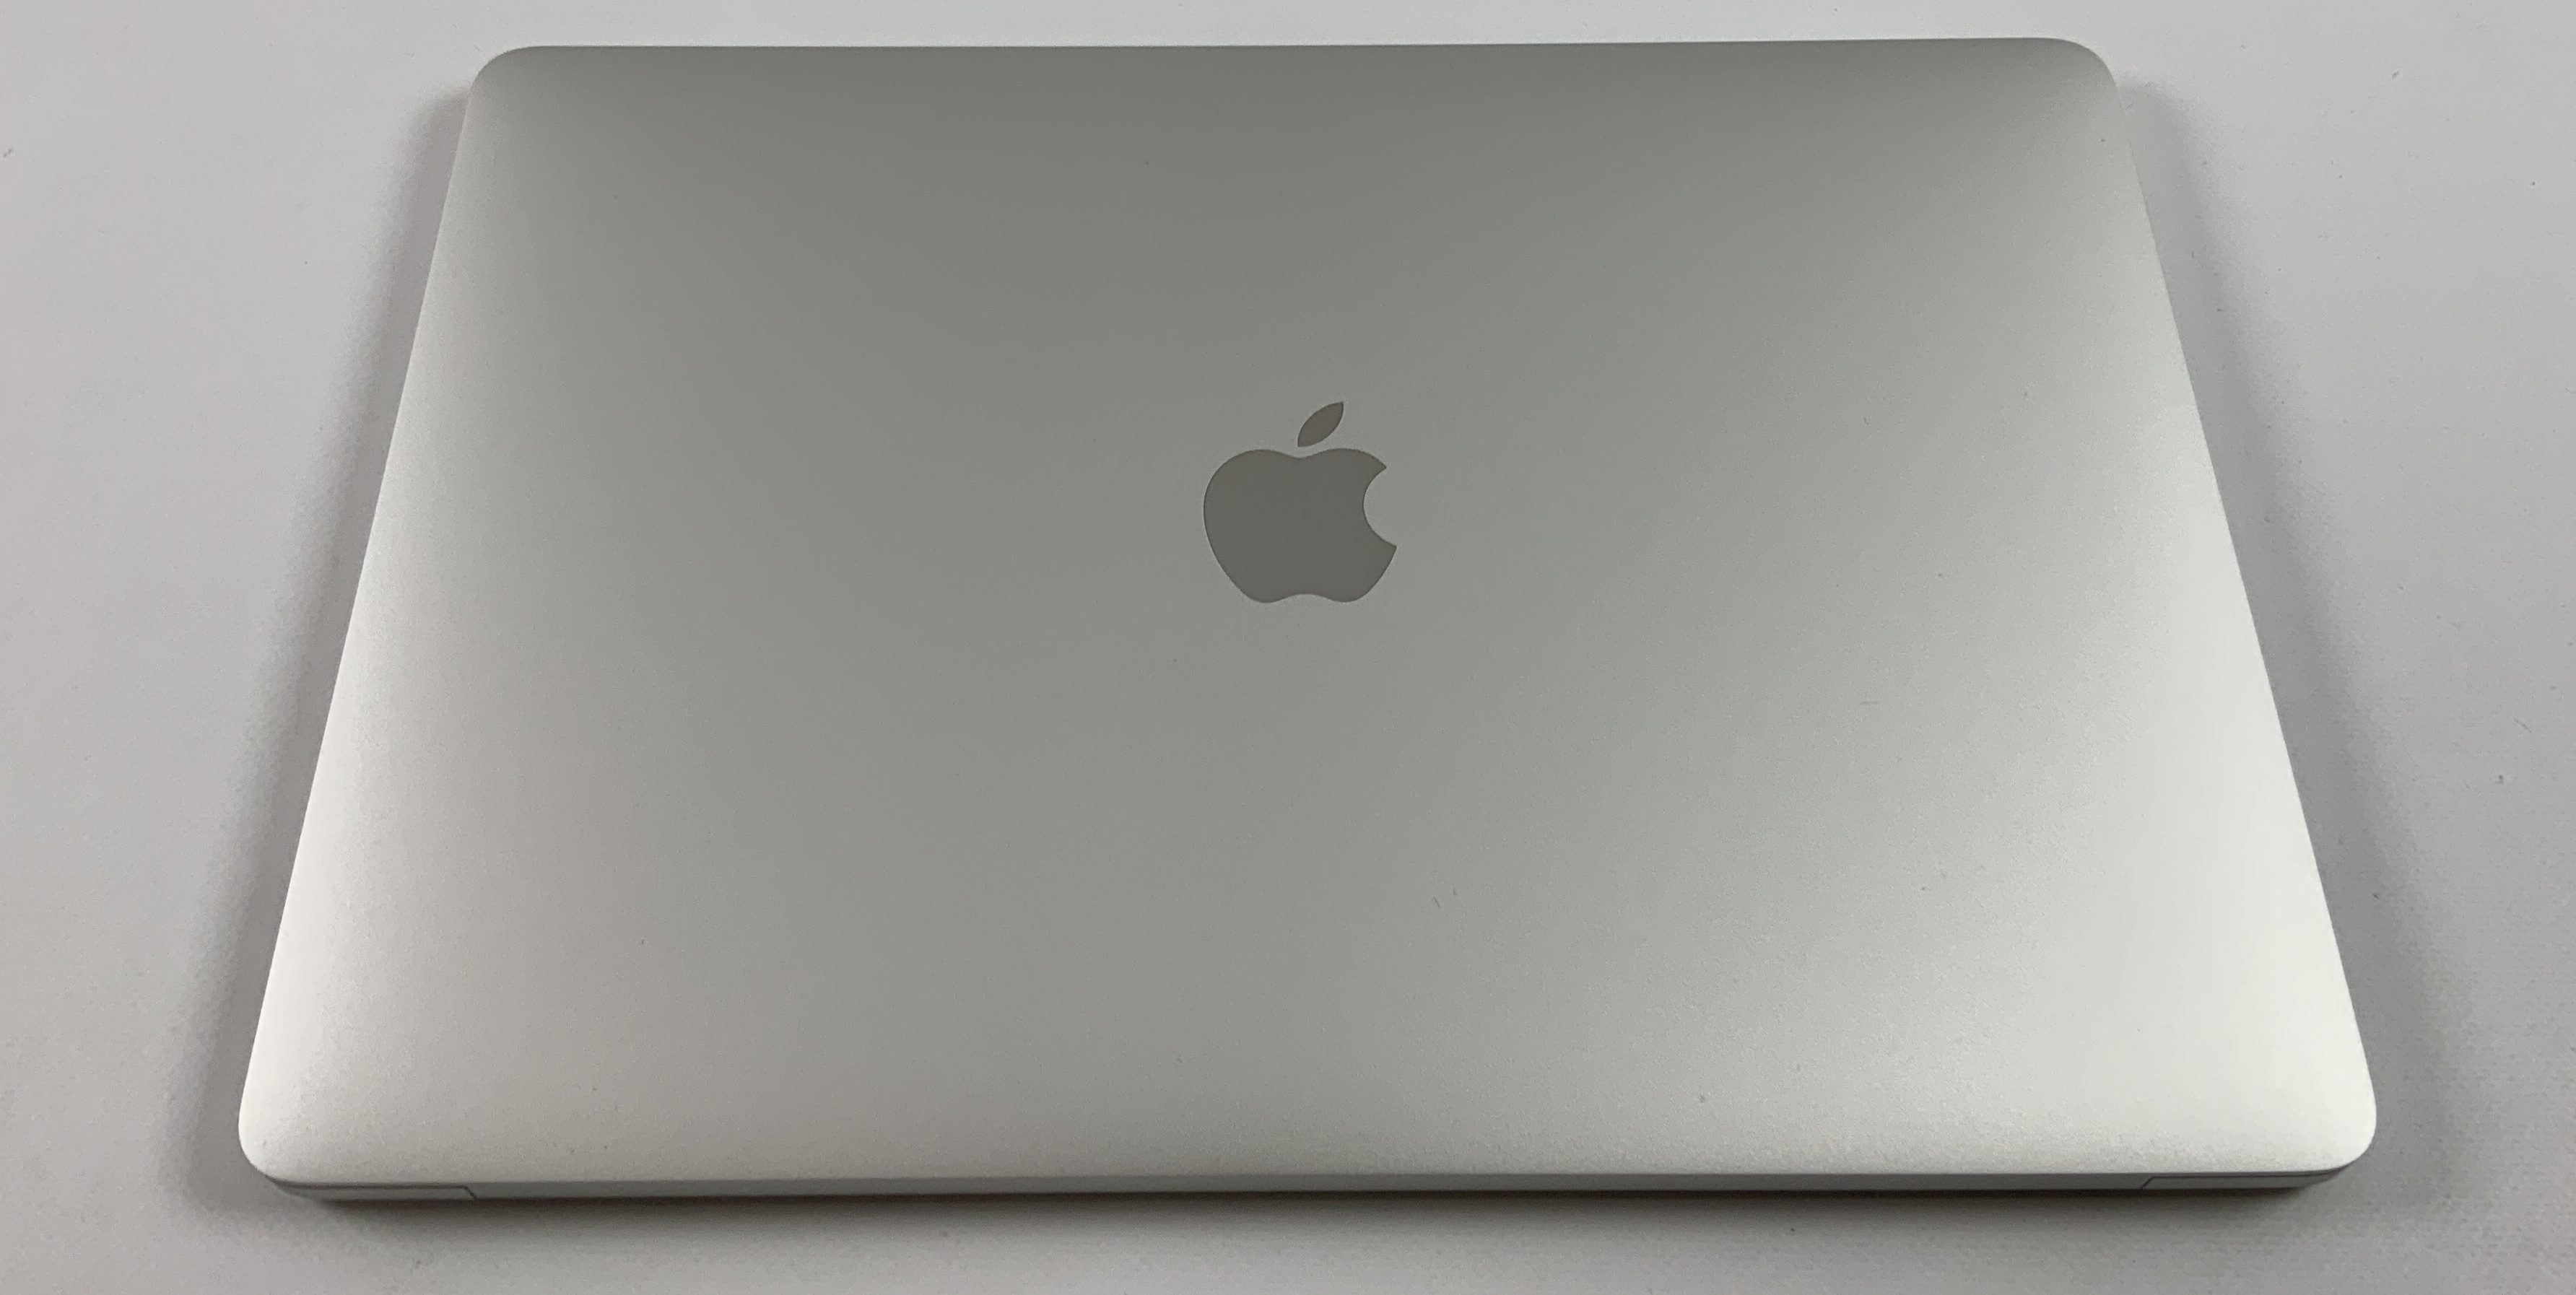 "MacBook Pro 13"" 4TBT Mid 2017 (Intel Core i5 3.1 GHz 8 GB RAM 512 GB SSD), Silver, Intel Core i5 3.1 GHz, 8 GB RAM, 512 GB SSD, imagen 2"